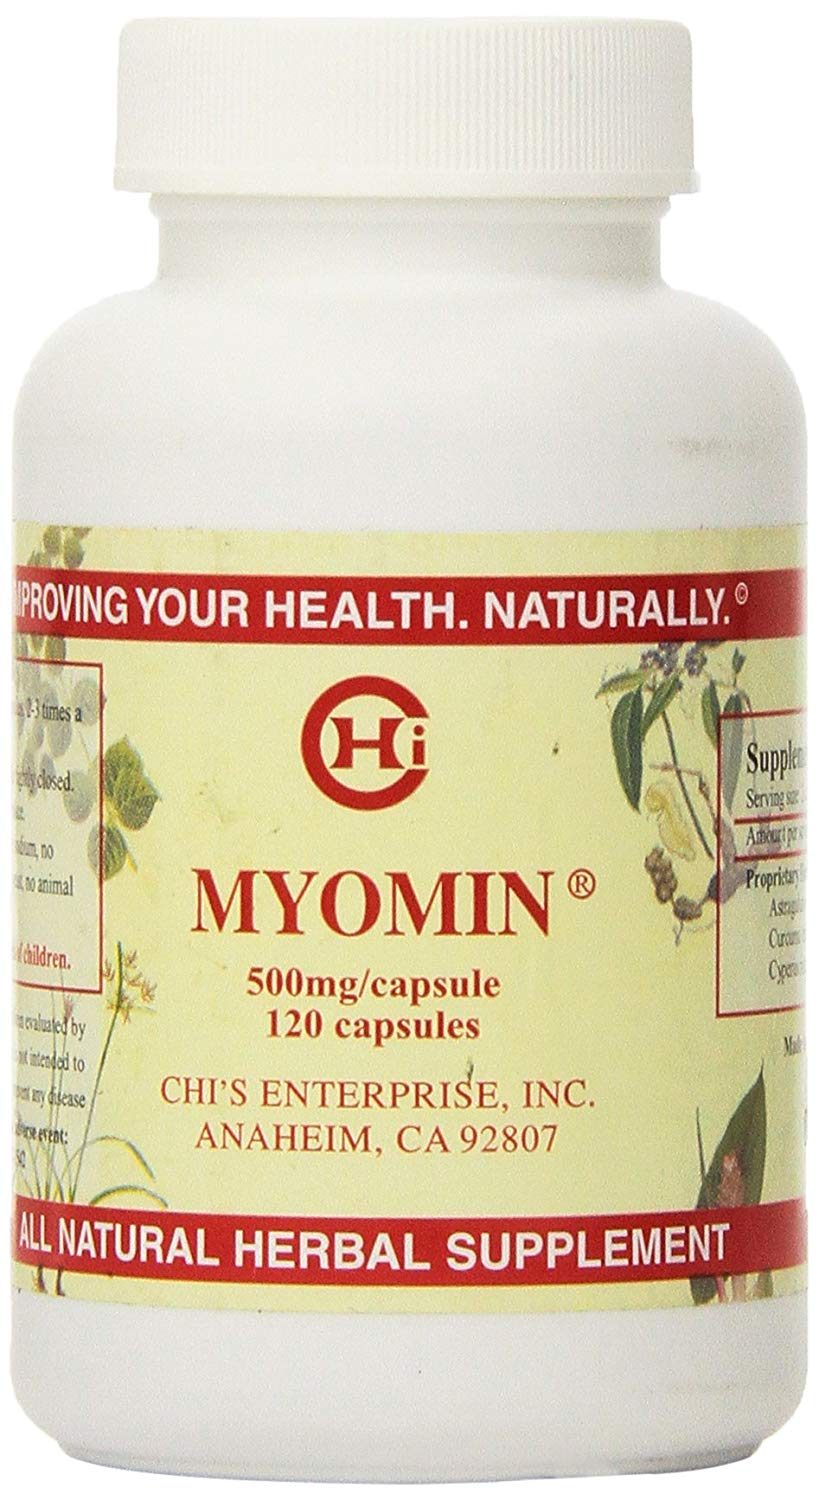 Chi's Enterprise 120 Piece Myomin Promotes Healthy Hormone Levels 500mg Capsules